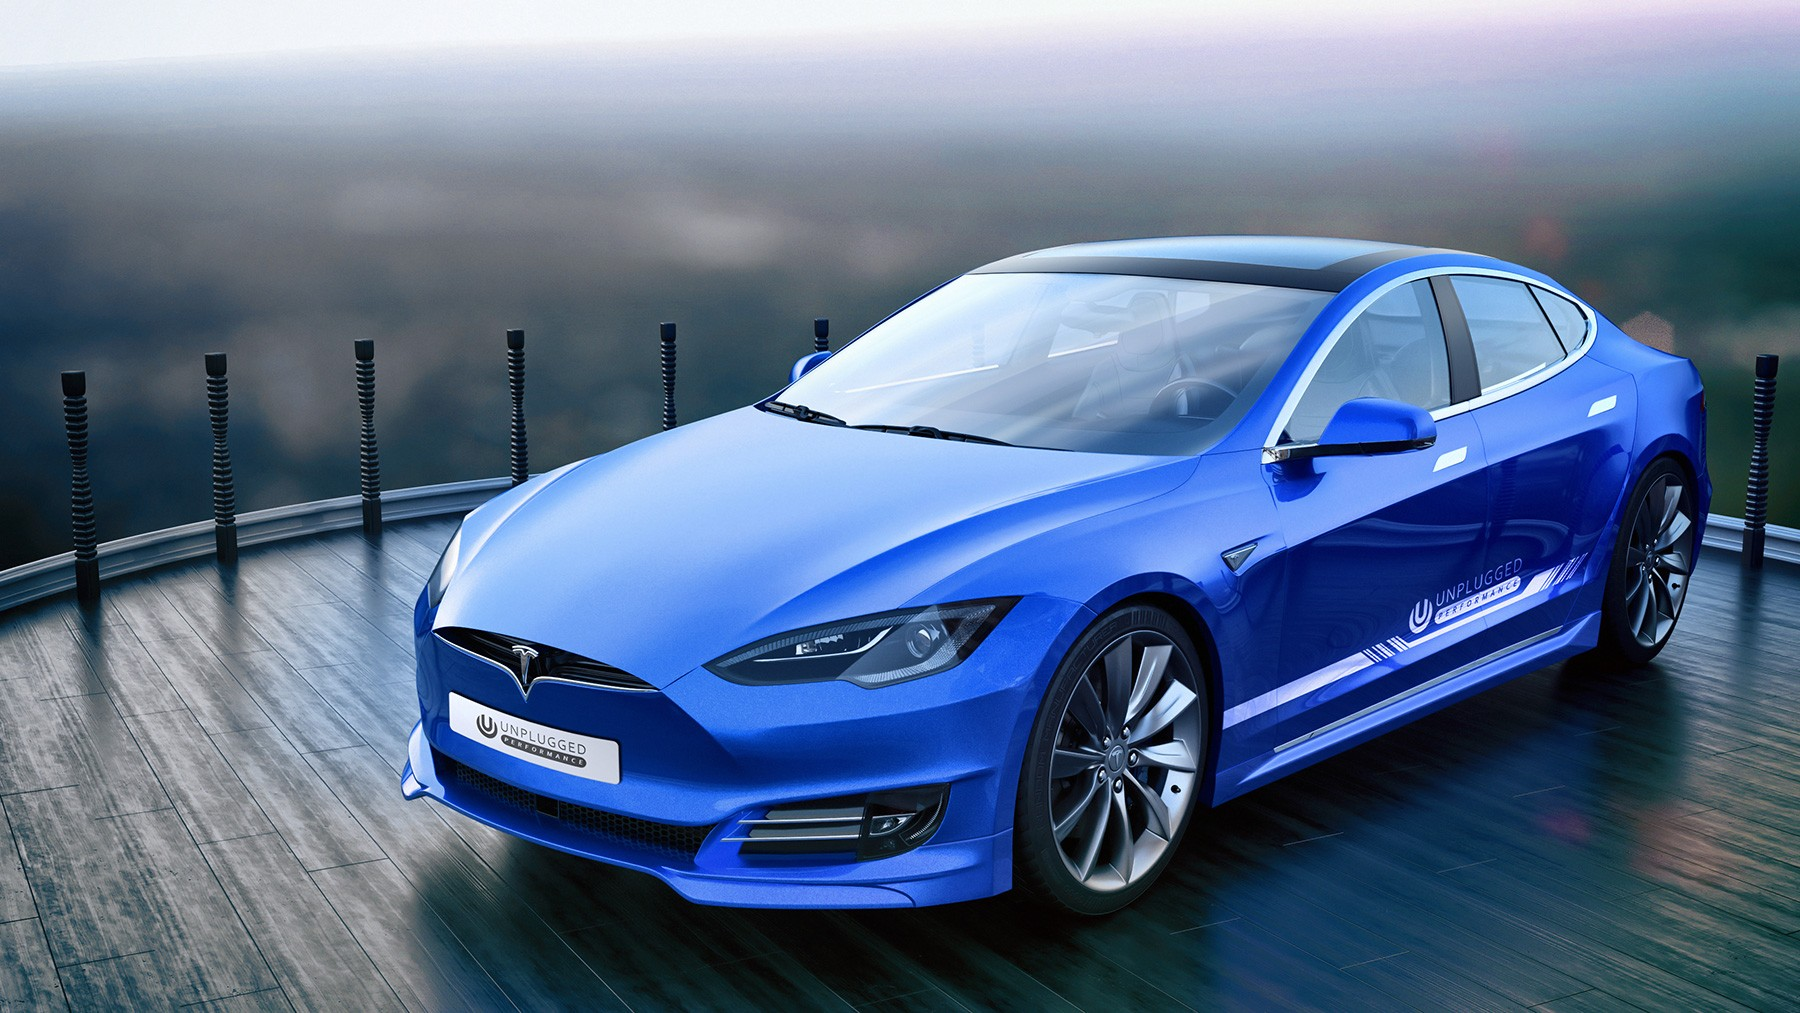 Tuning Company Proposes New Face For Old Tesla Model S